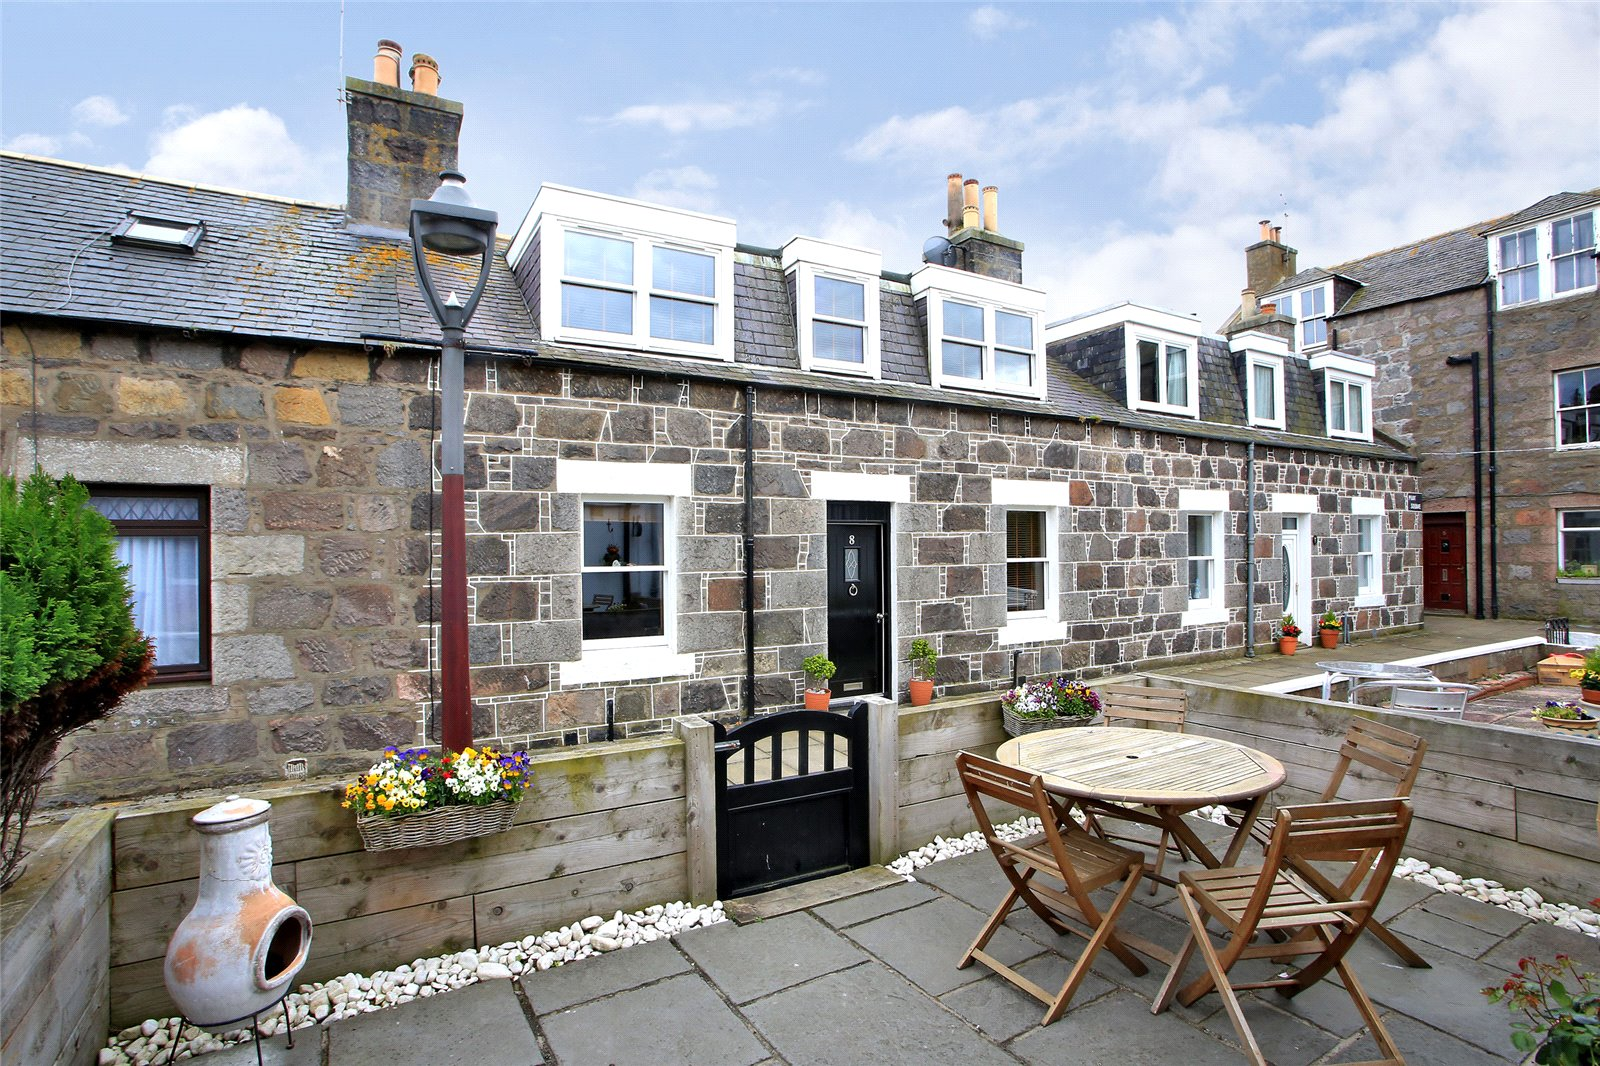 North-east fishing cottage in stunning restoration